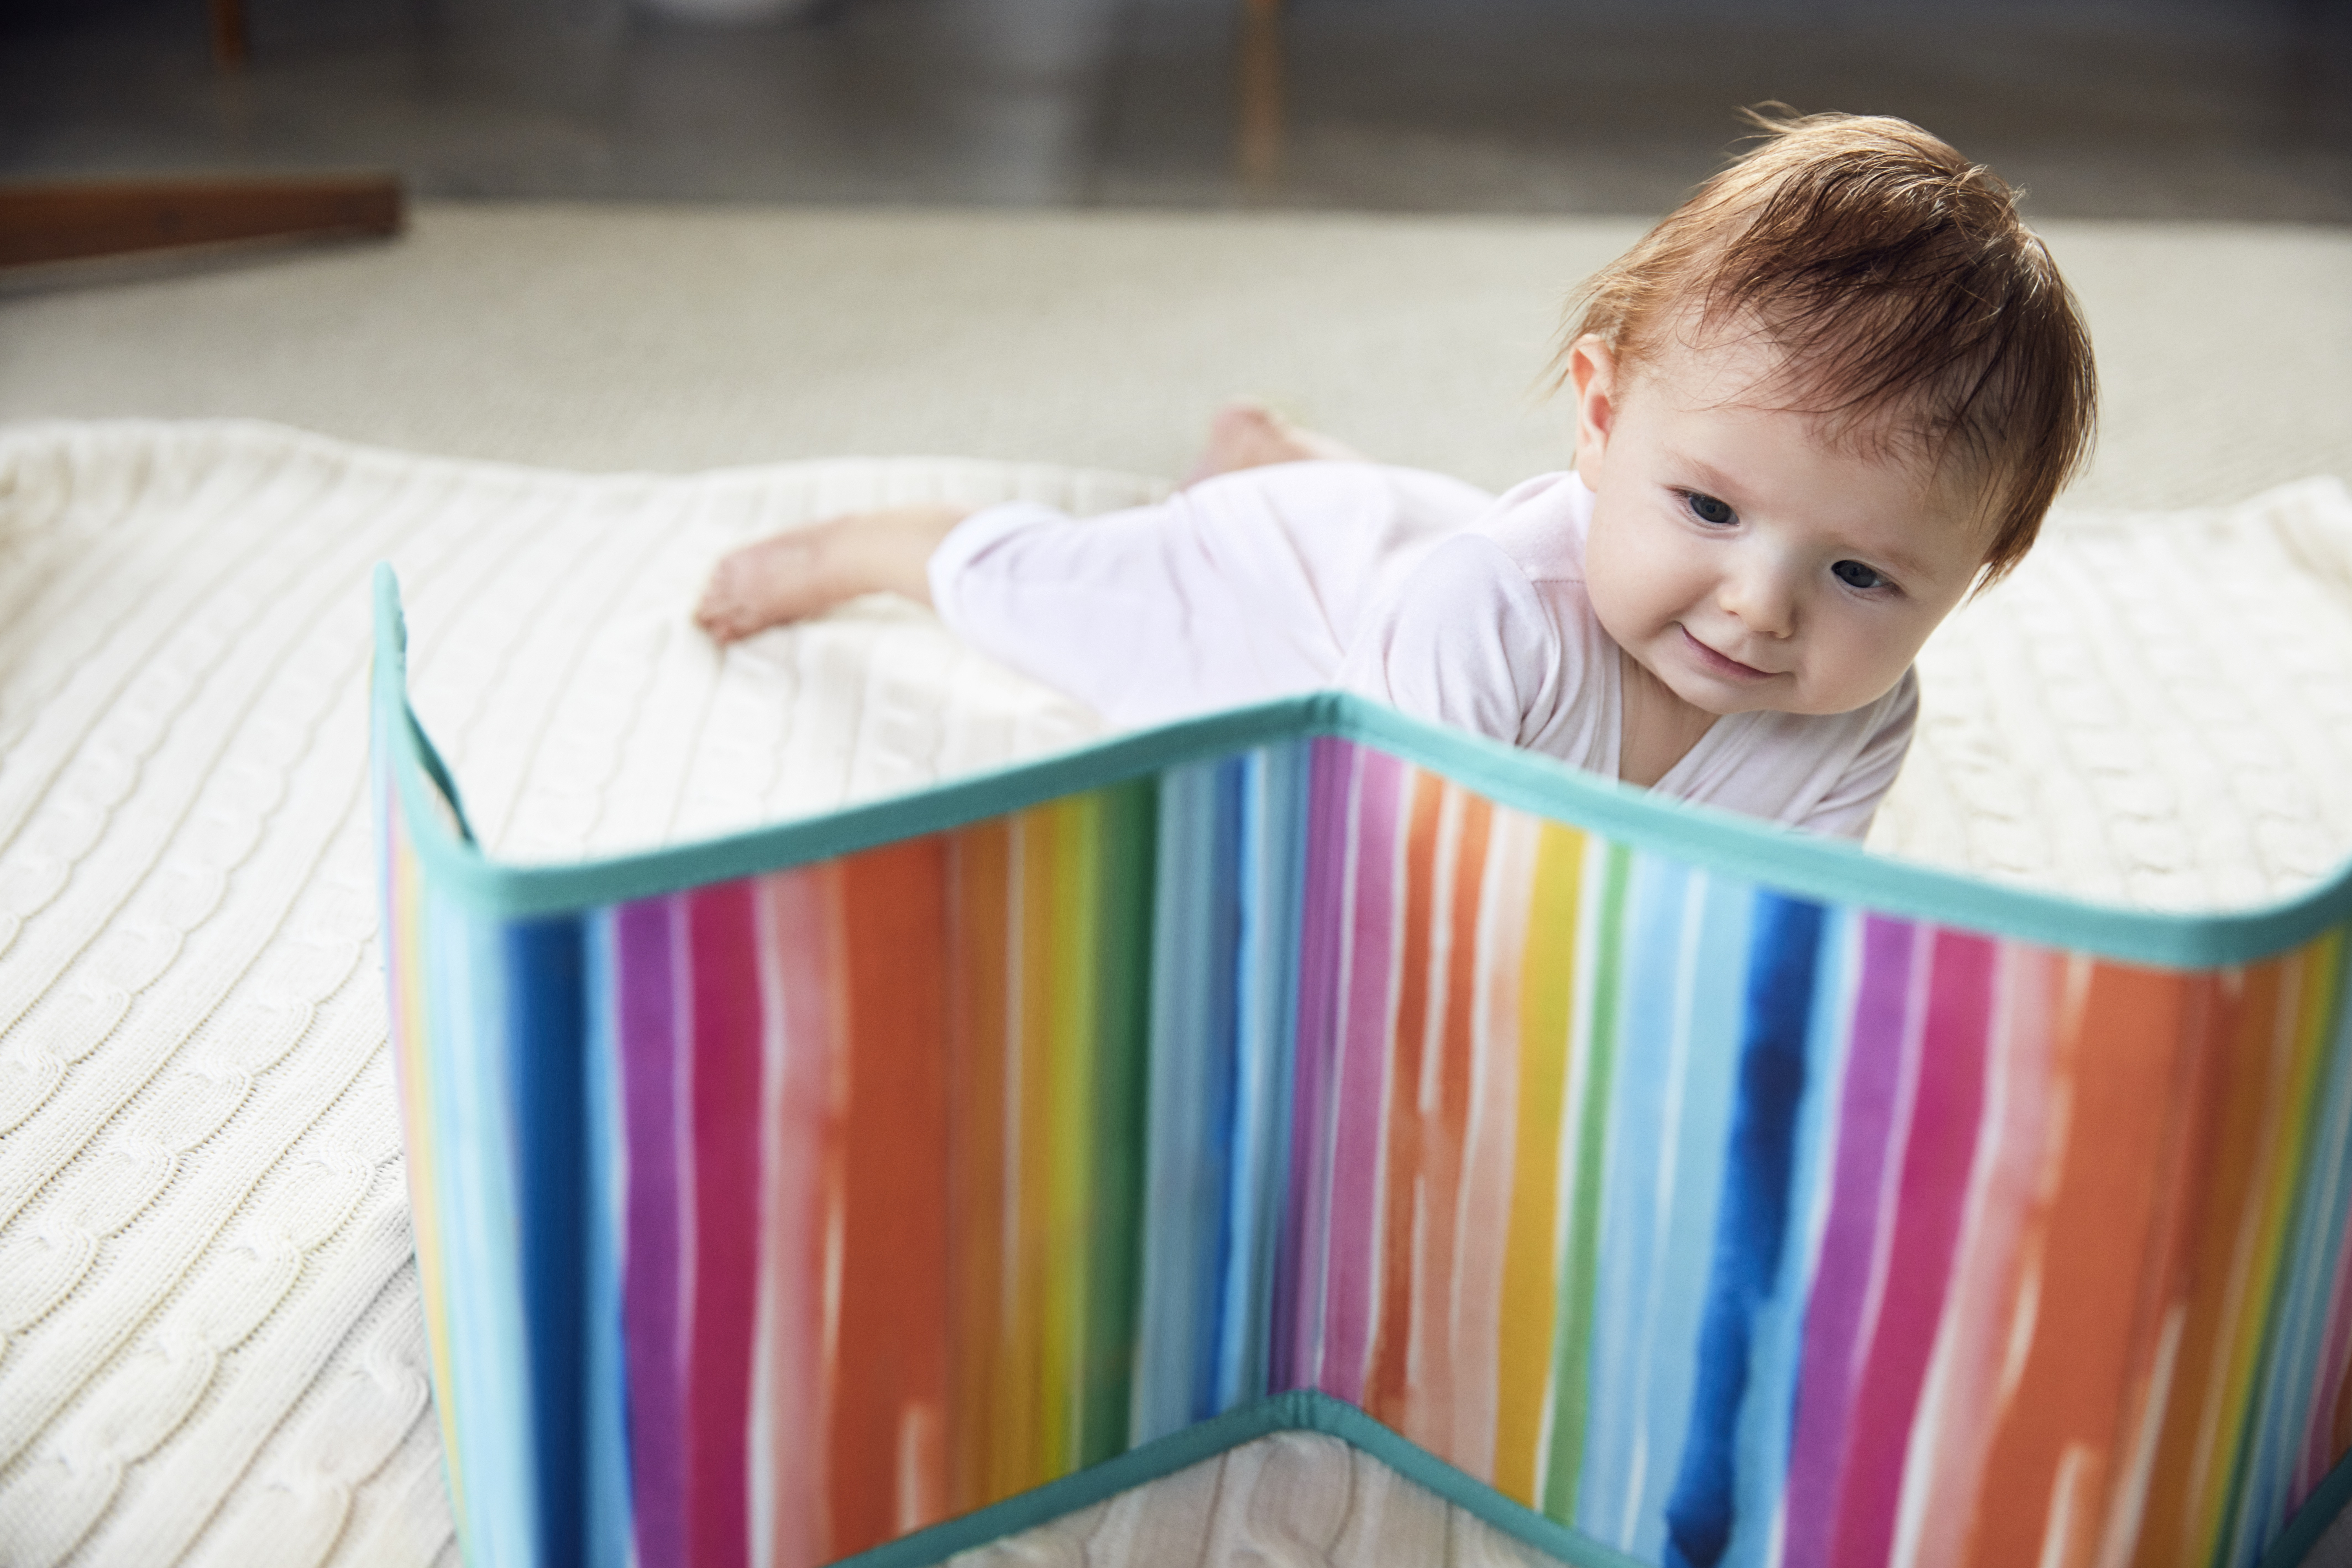 Baby doing tummy time while looking at the Standing Card Holder by Lovevery